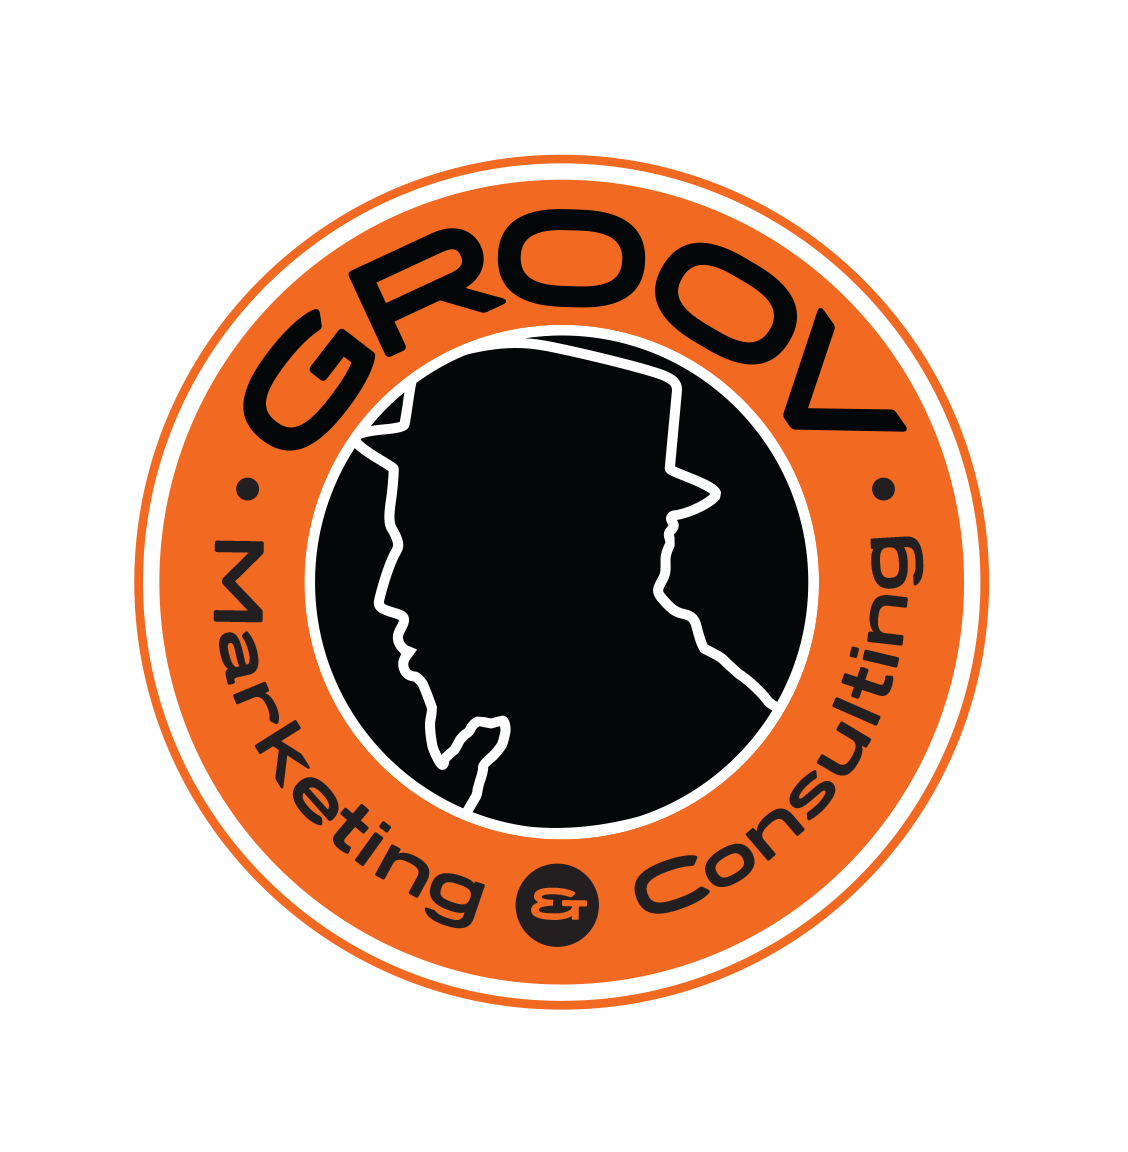 GROOV Marketing & Consulting primary image